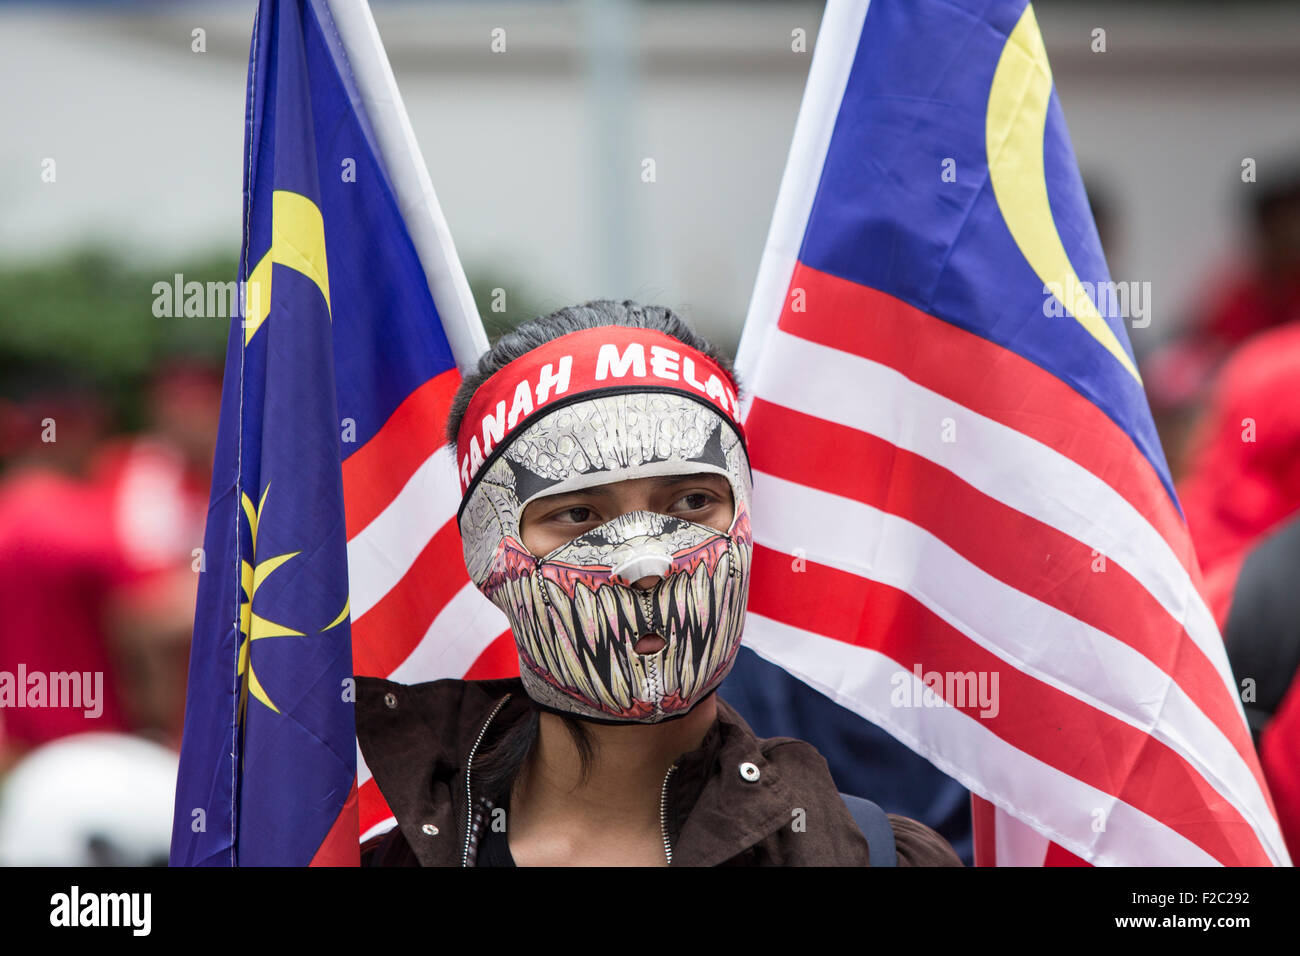 Kuala Lumpur, Malaysia. 16th Sep, 2015. A pro-government protester takes part in a demonstration in Kuala Lumpur, - Stock Image